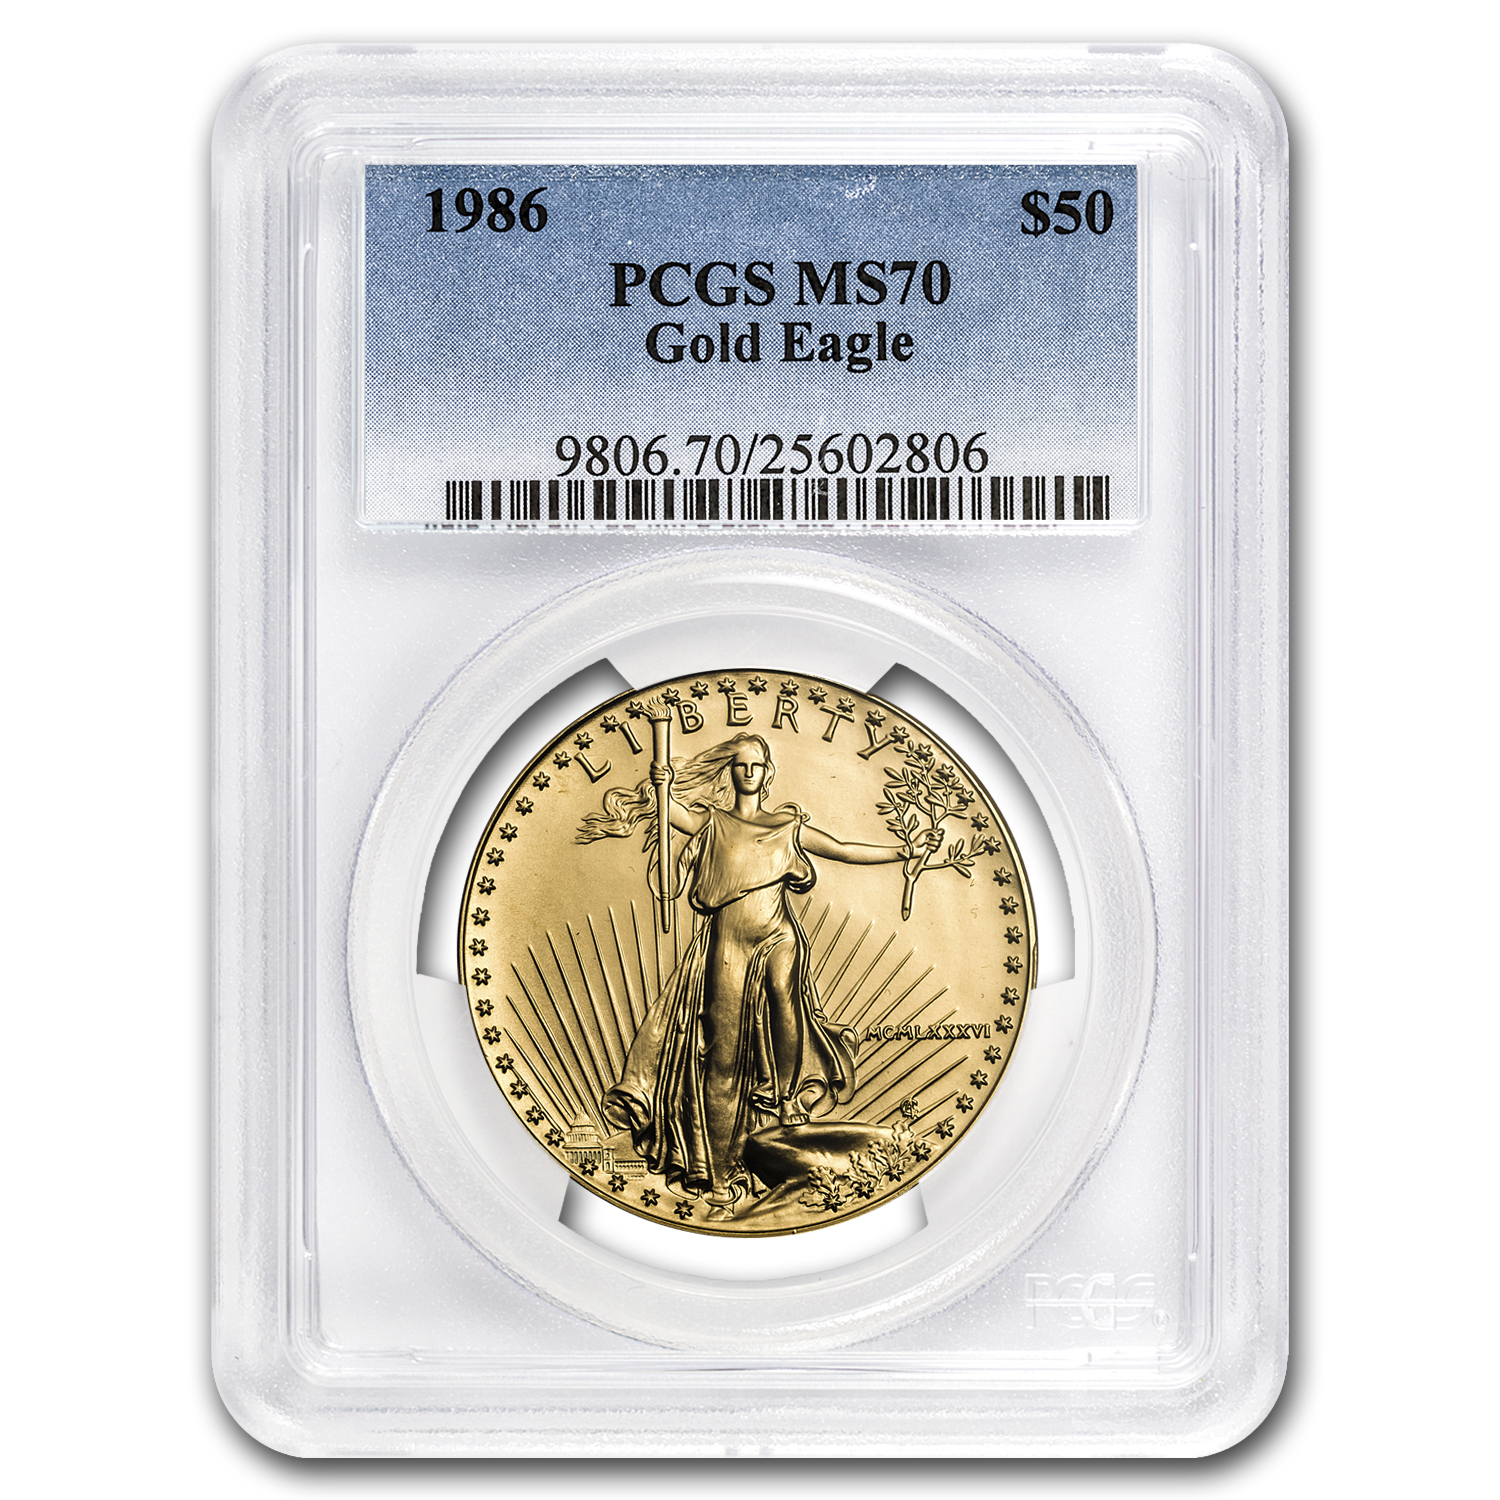 1986 1 oz Gold American Eagle MS-70 PCGS (Registry Coin)